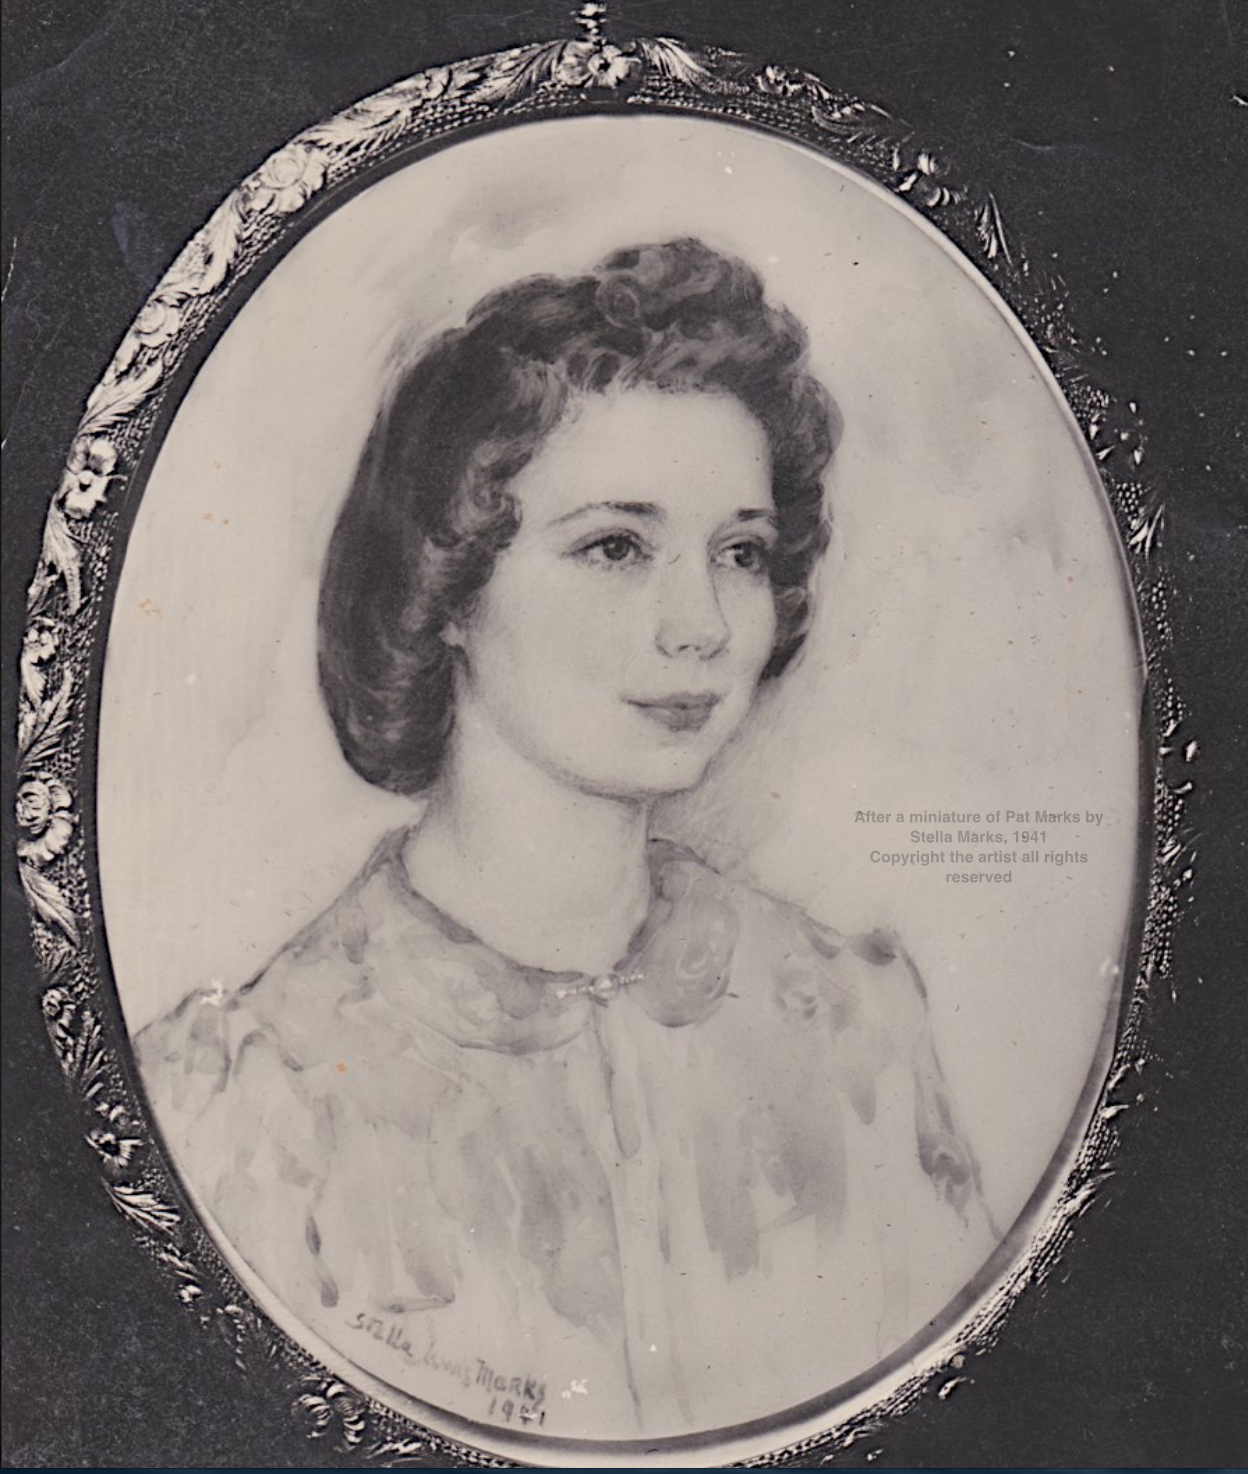 After a miniature of Pat Marks by Stella Marks, 1941 Copyright Stella Marks' Estate all rights reserve